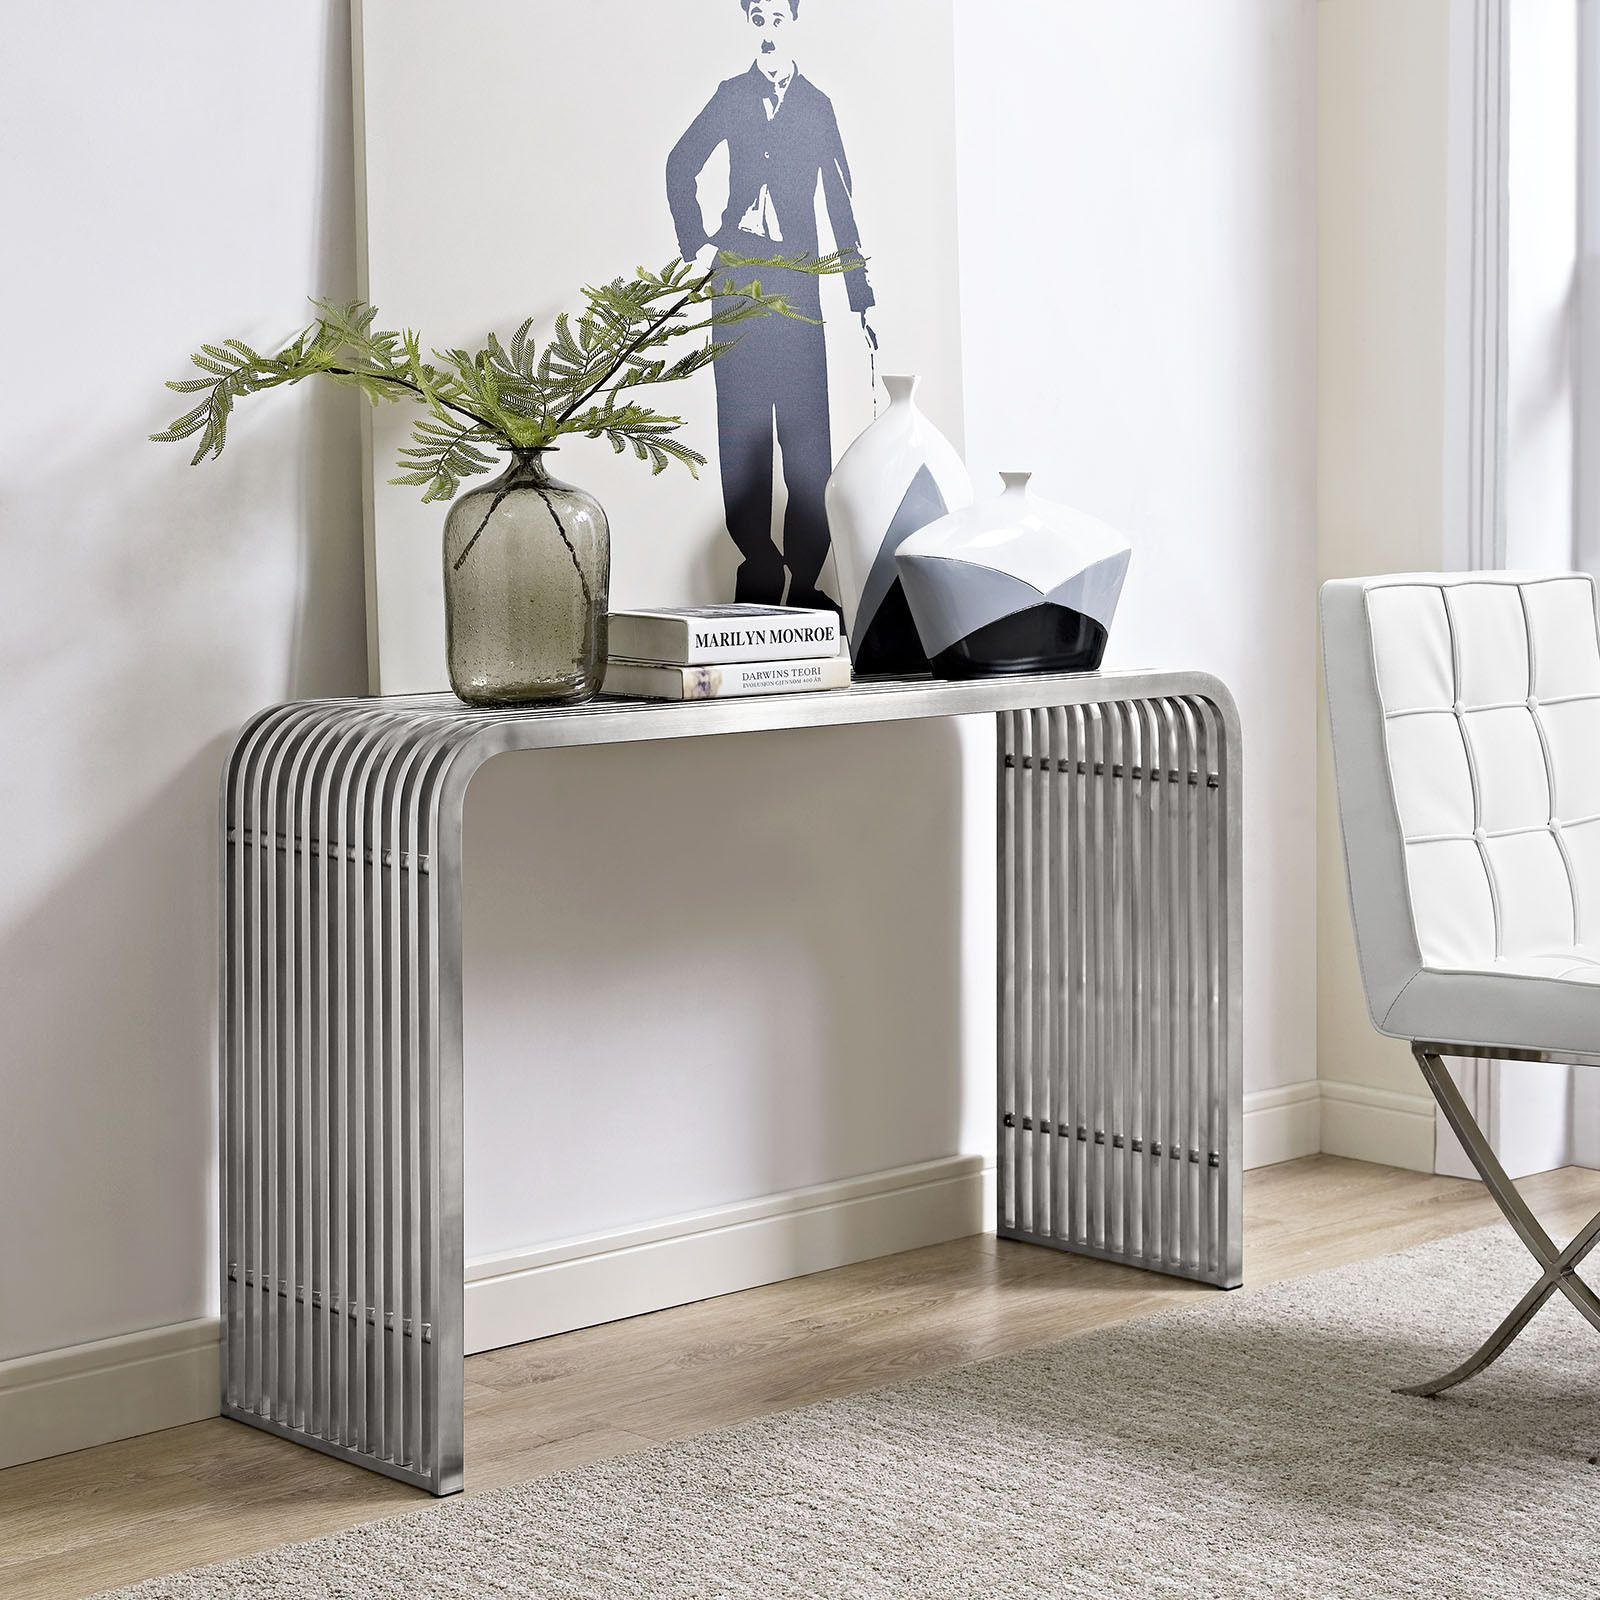 Pipe stainless steel console table silver modway products